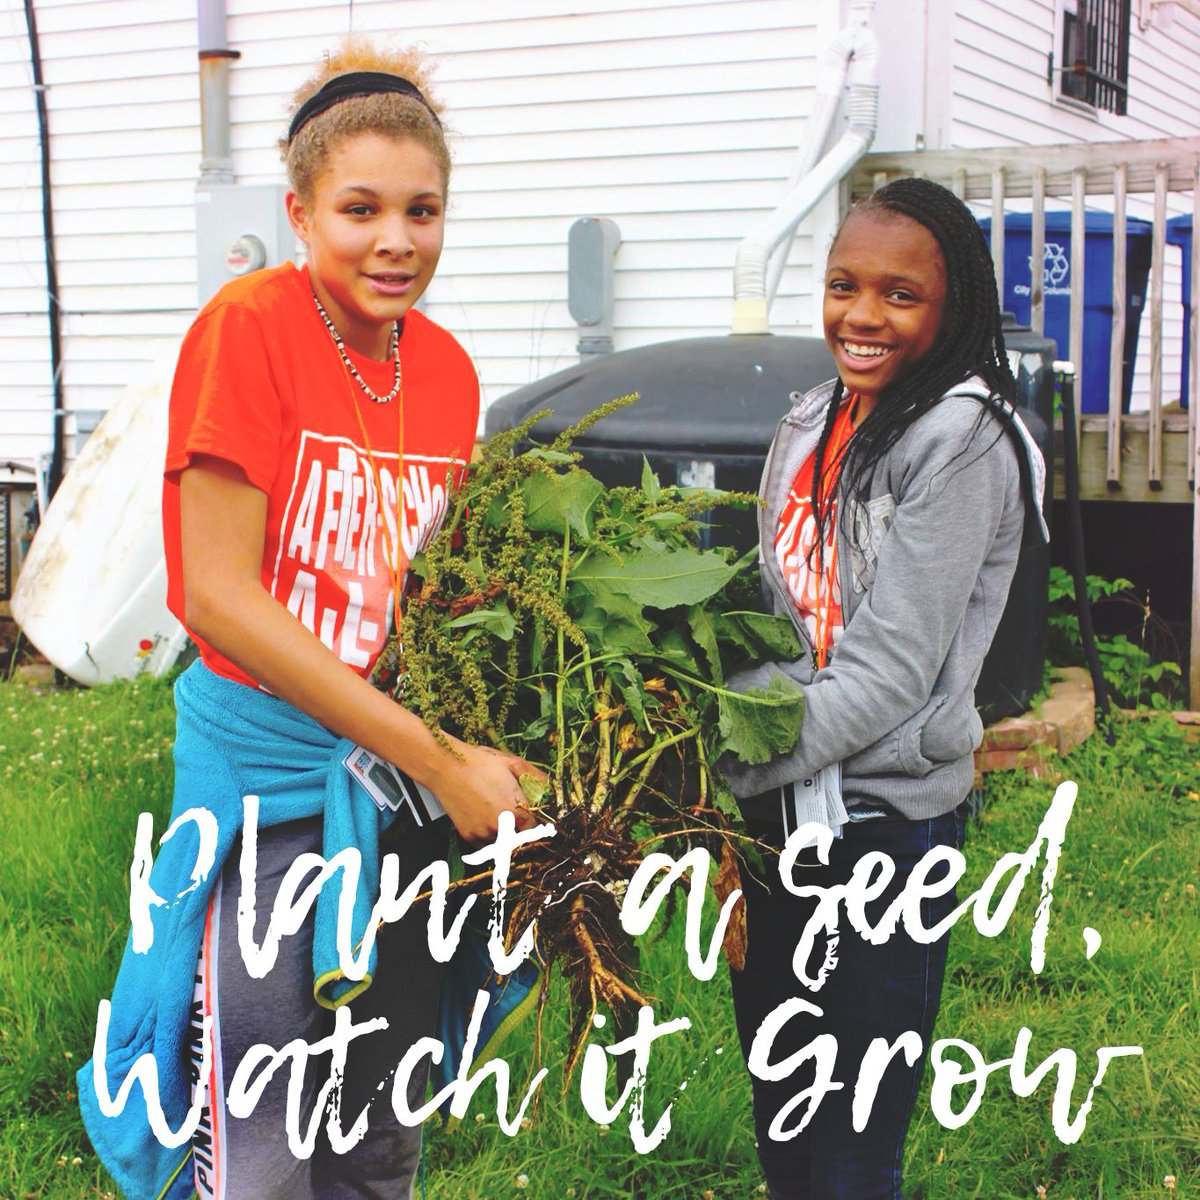 We Want Our Kids To Know That Healthy Growth Takes Time, Patience, And Care  So That They Can Apply This Knowledge To More Than Just Gardening.